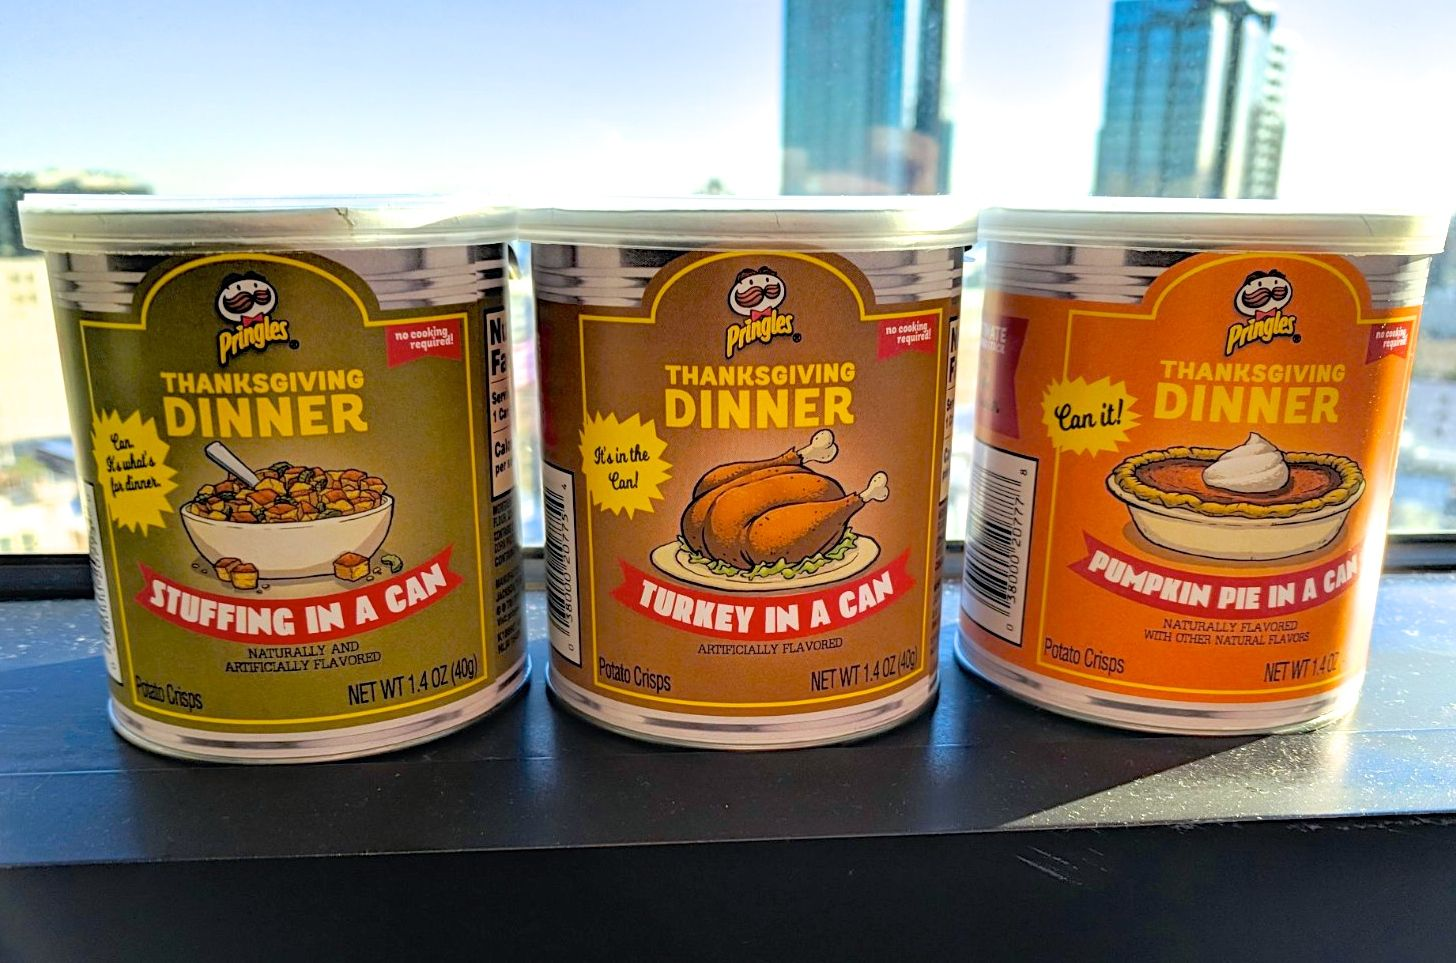 We tried the Thanksgiving Pringles, and they got extremely mixed reviews